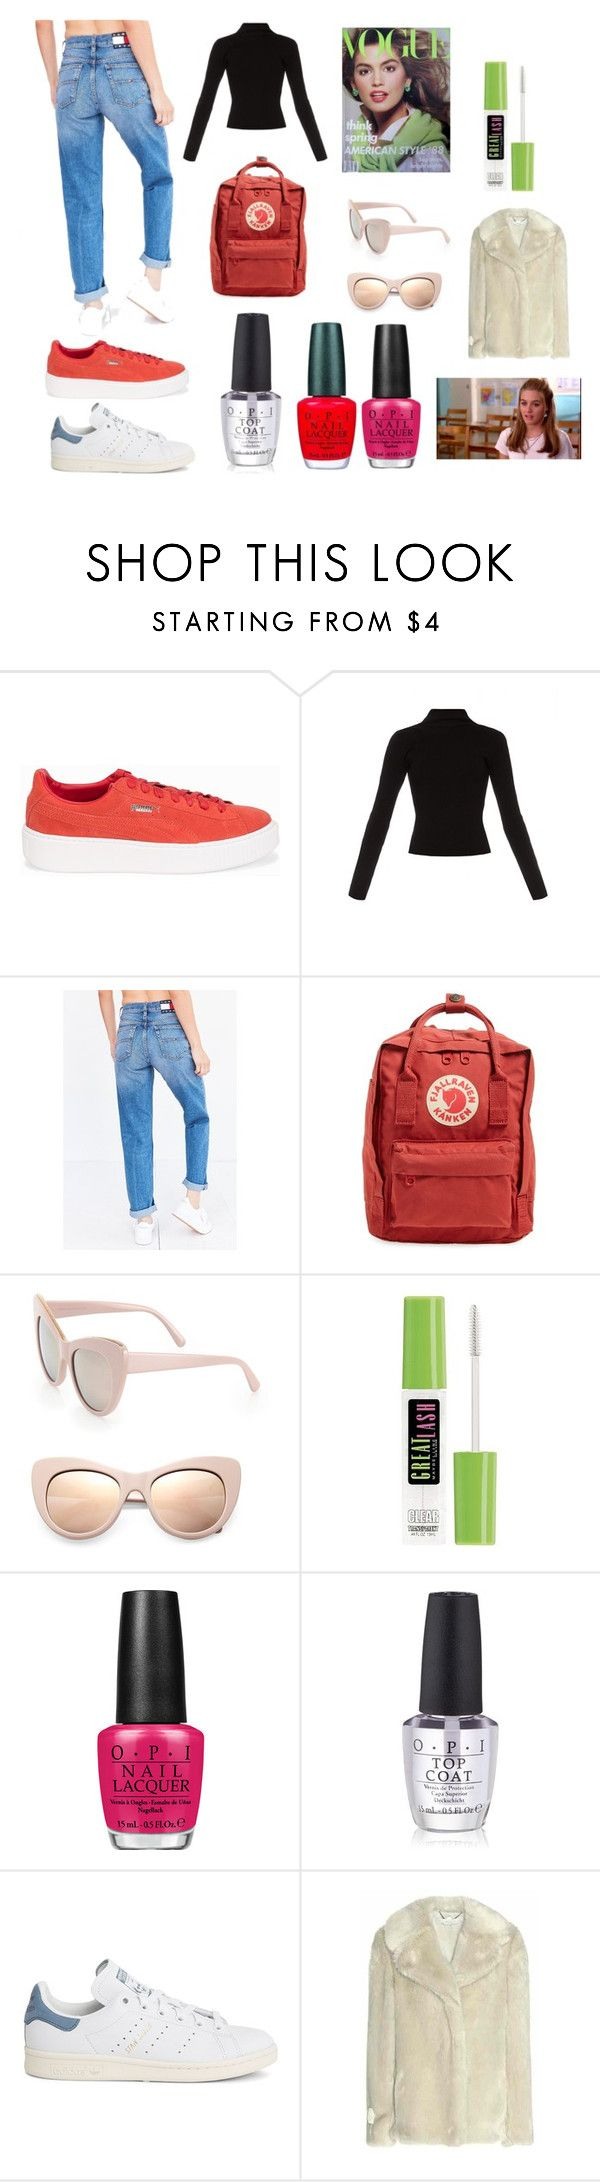 """""""back to school"""" by skybluepatricia on Polyvore featuring Puma, Haider Ackermann, Tommy Hilfiger, Fjällräven, STELLA McCARTNEY, SilverStone, Maybelline, OPI and adidas"""